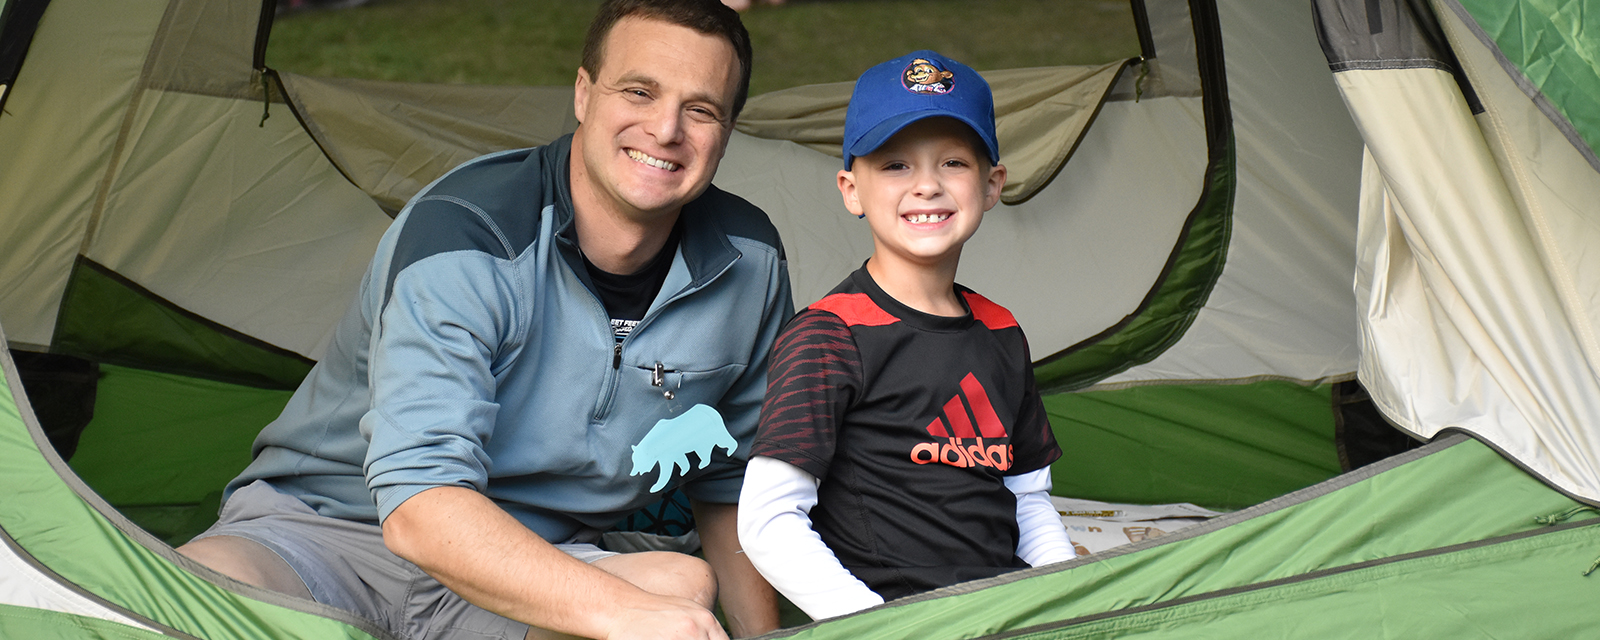 Father and son getting ready to camp in their tent